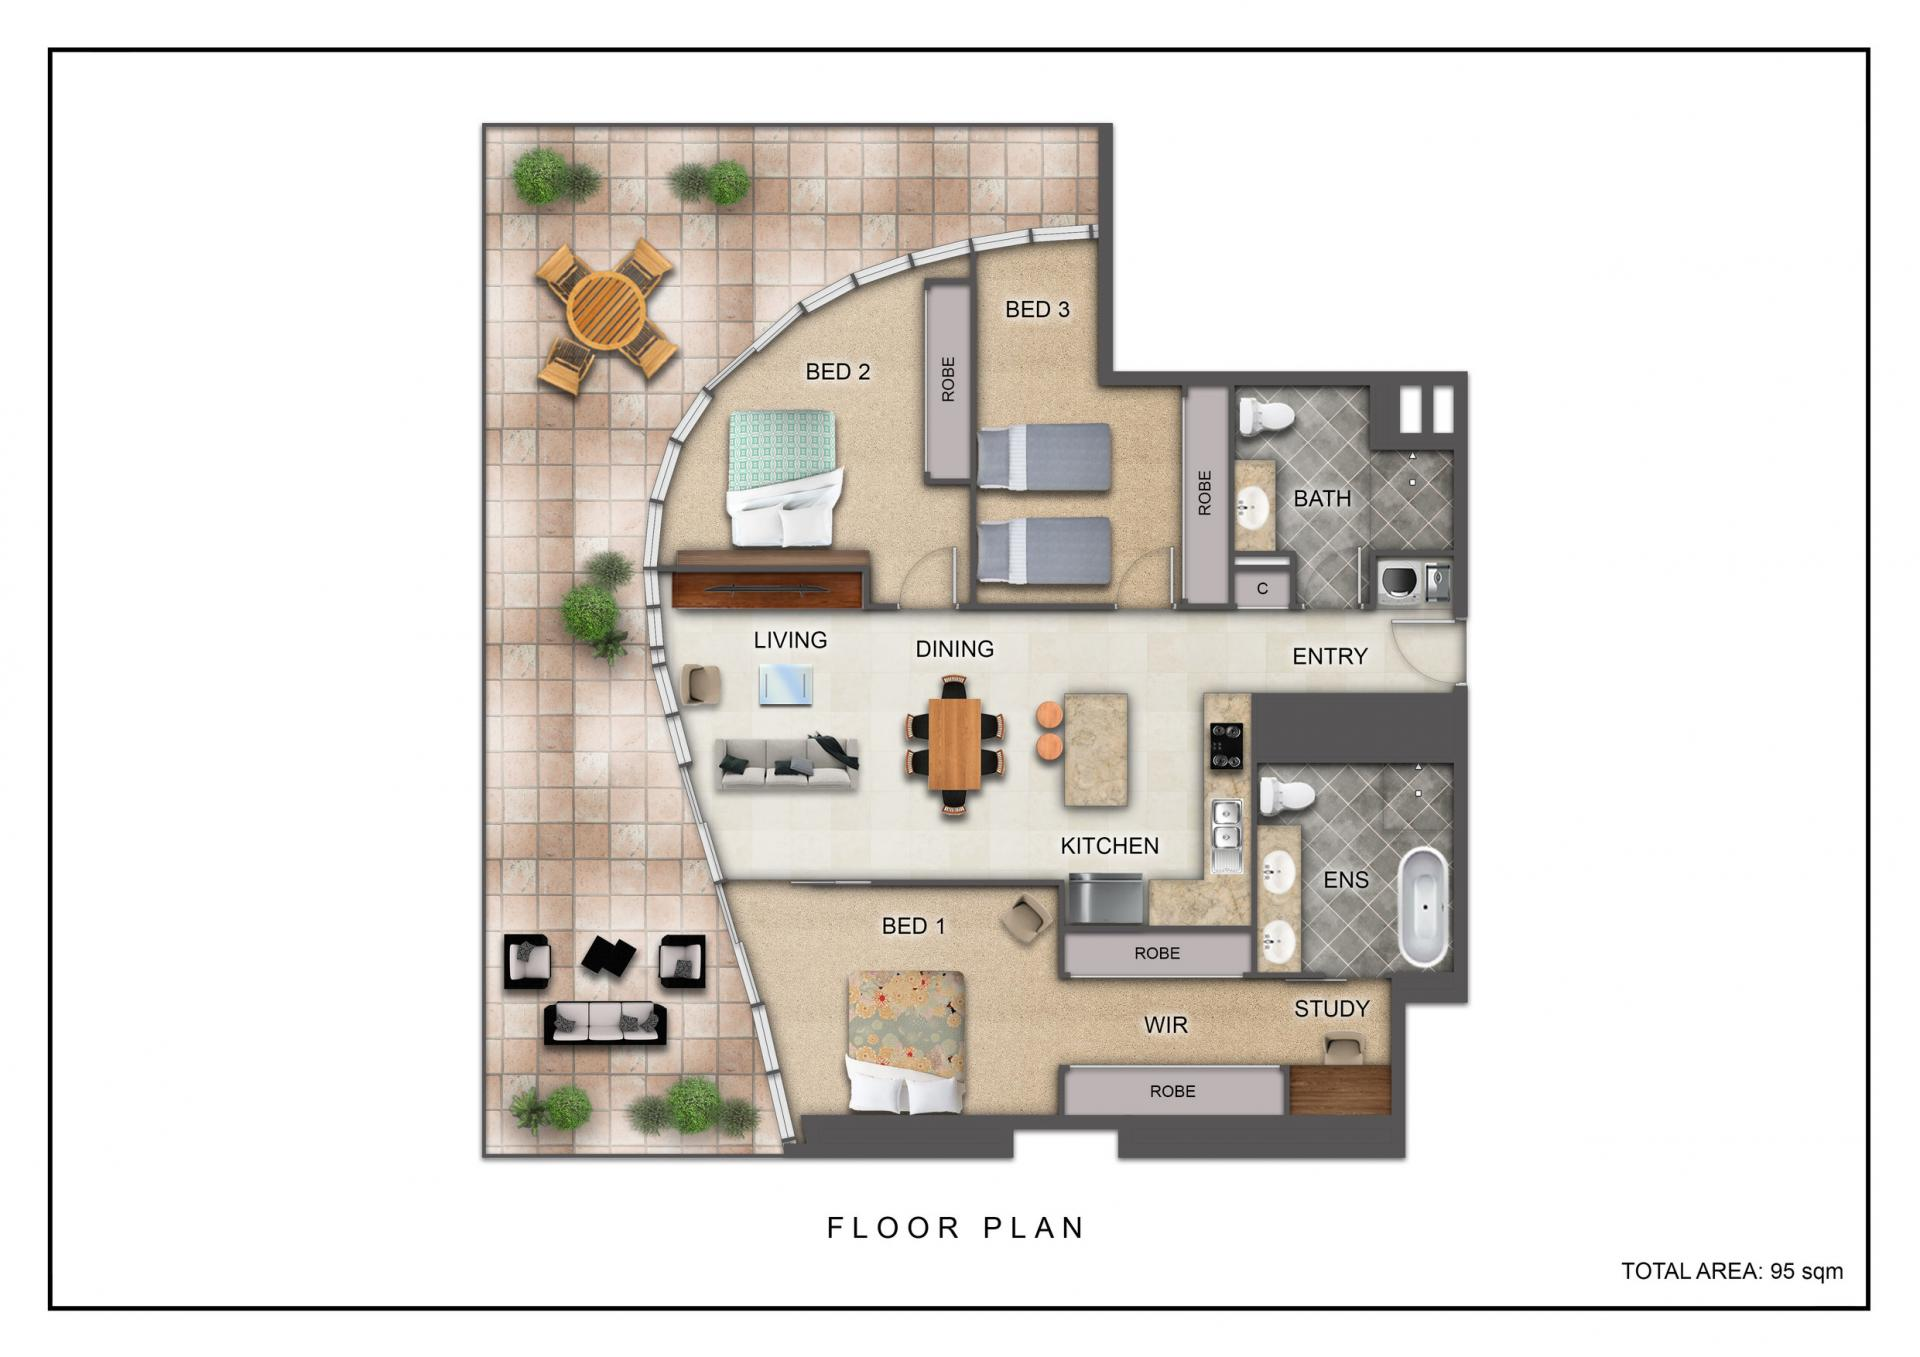 Floor plan of The Capitol, South Yarra, Melbourne